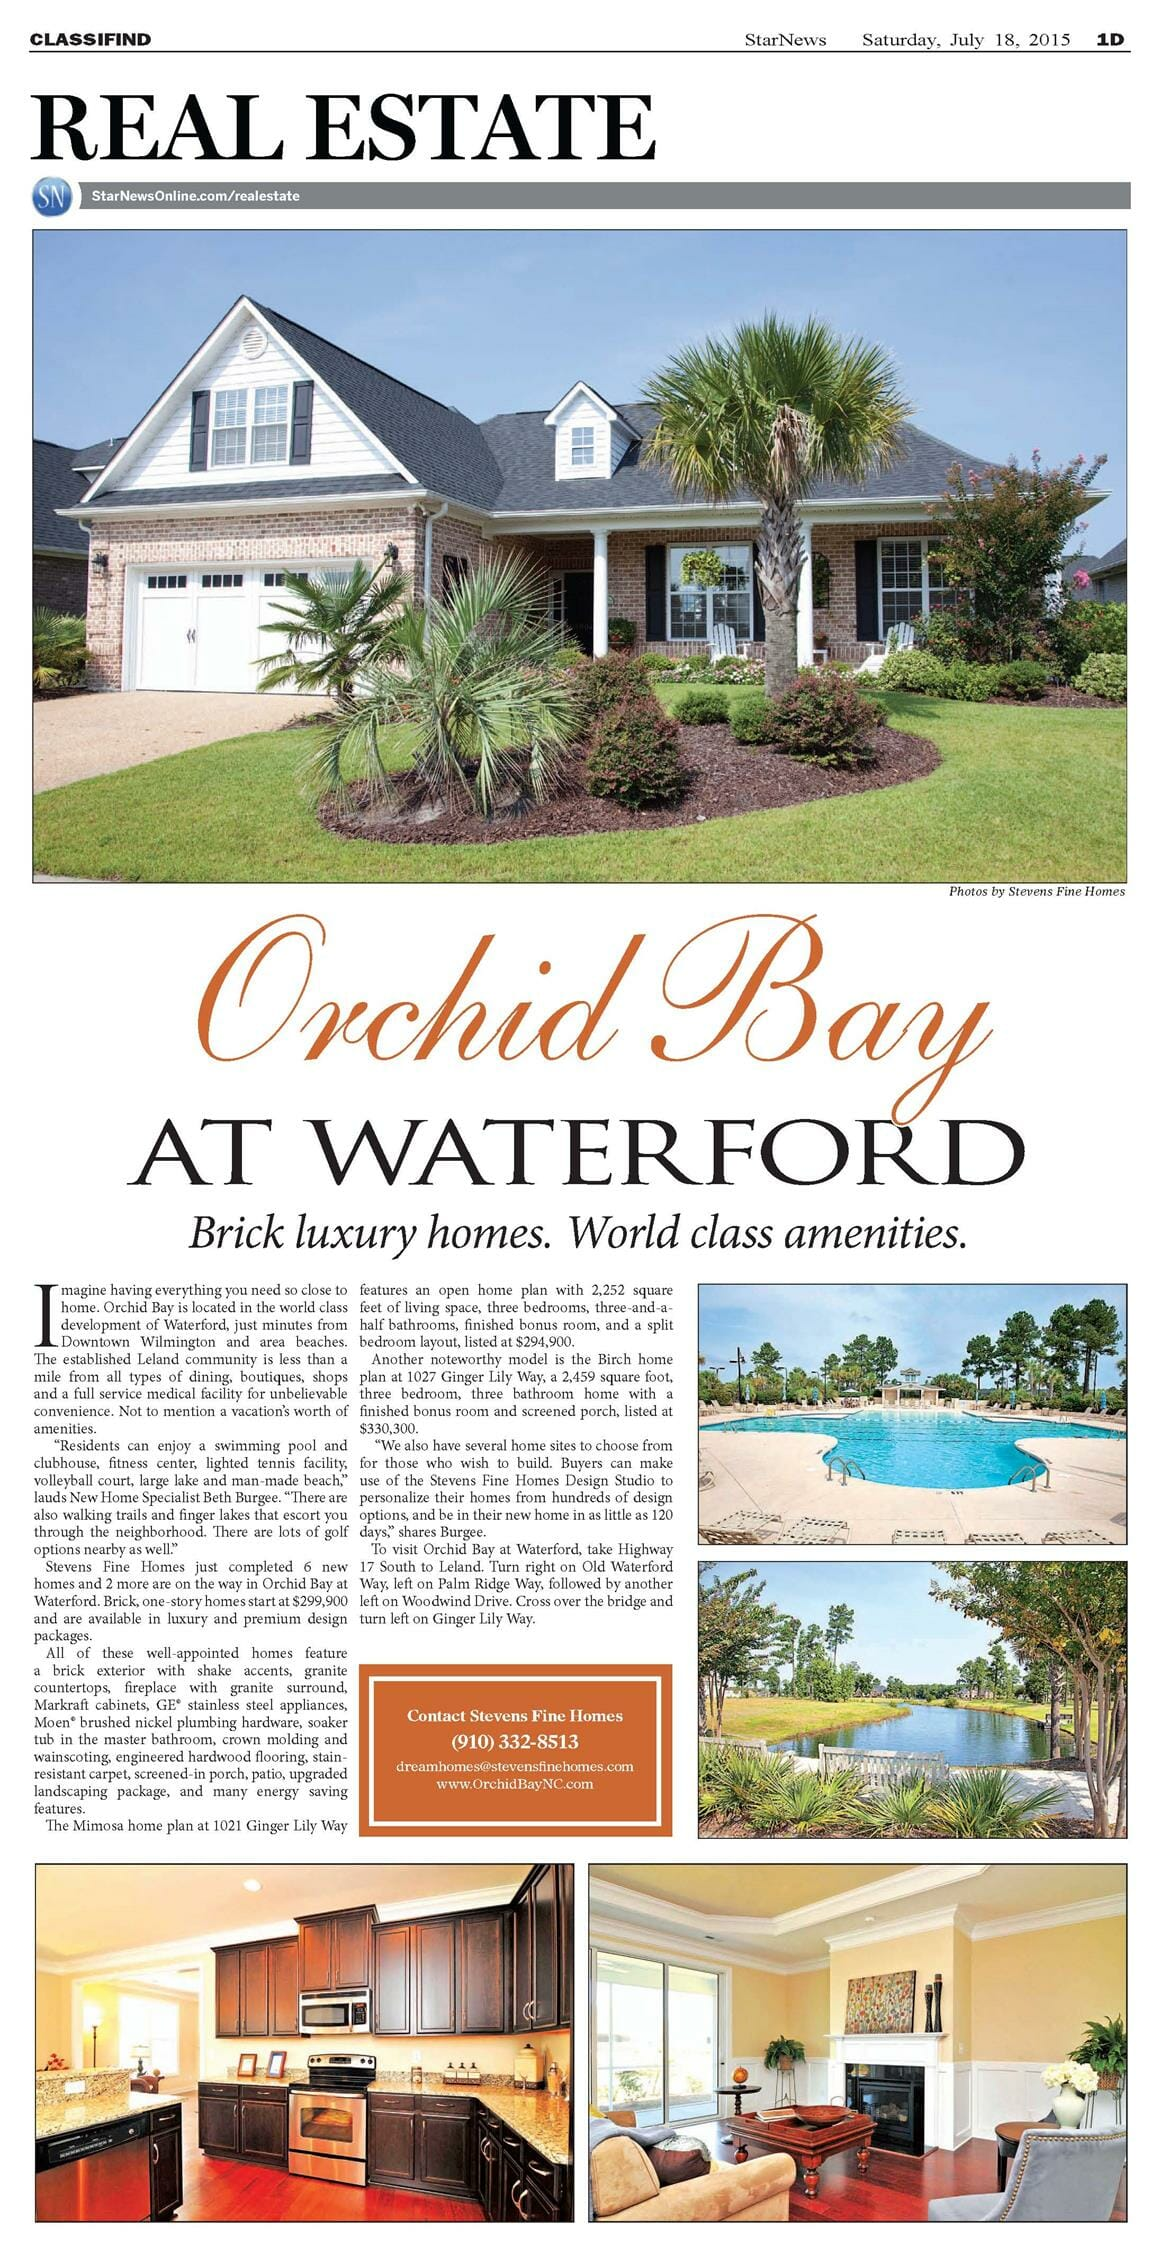 Orchid Bay, New Homes Making Headlines